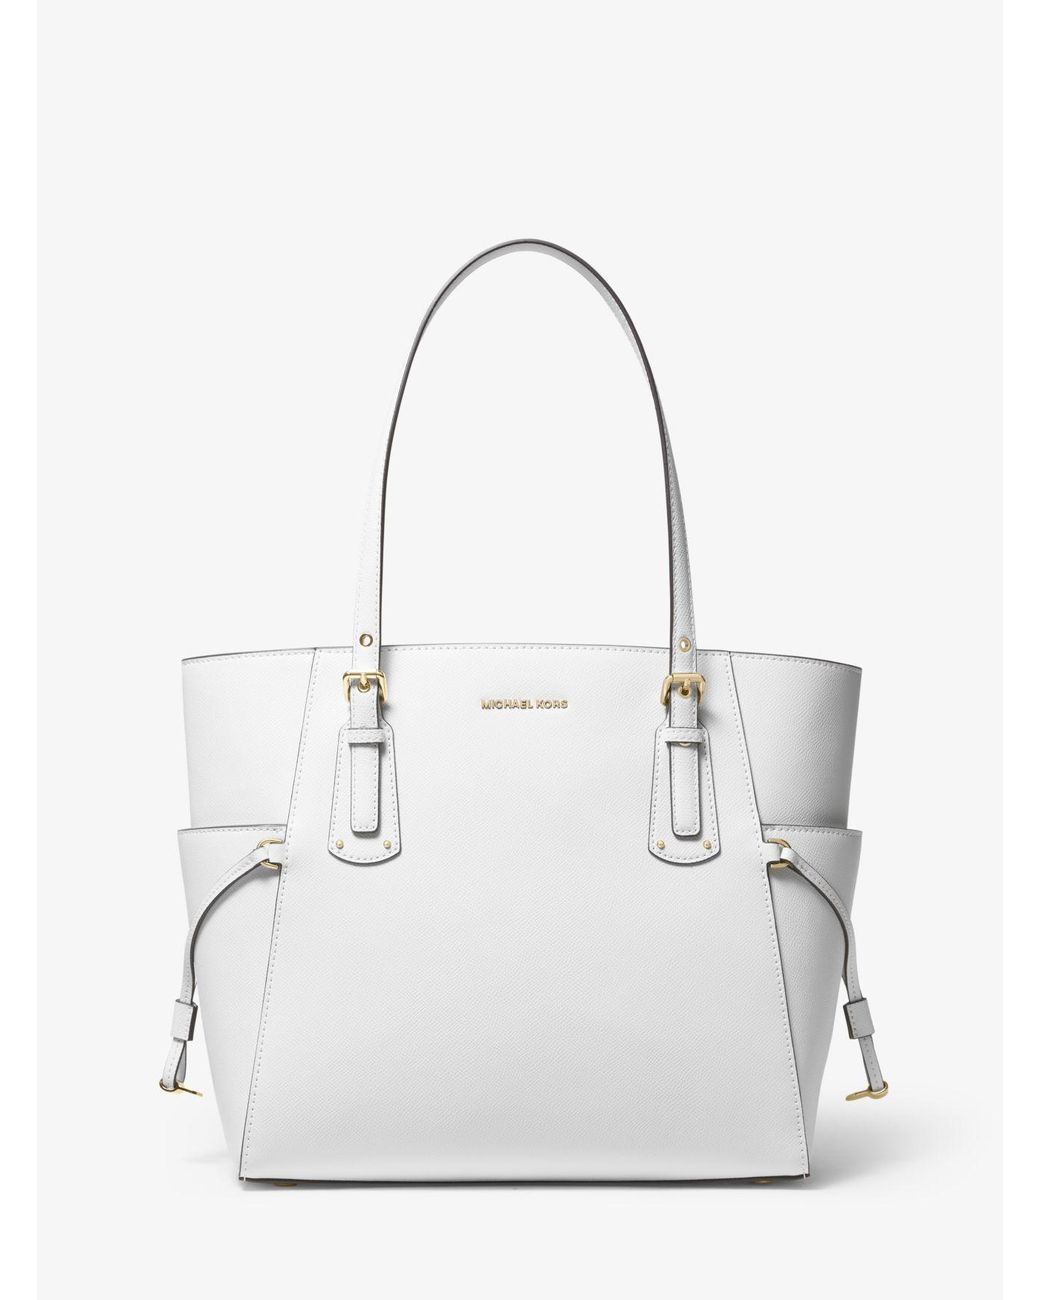 2ddab32c467b Michael Kors Voyager Small Crossgrain Leather Tote Bag in White - Lyst